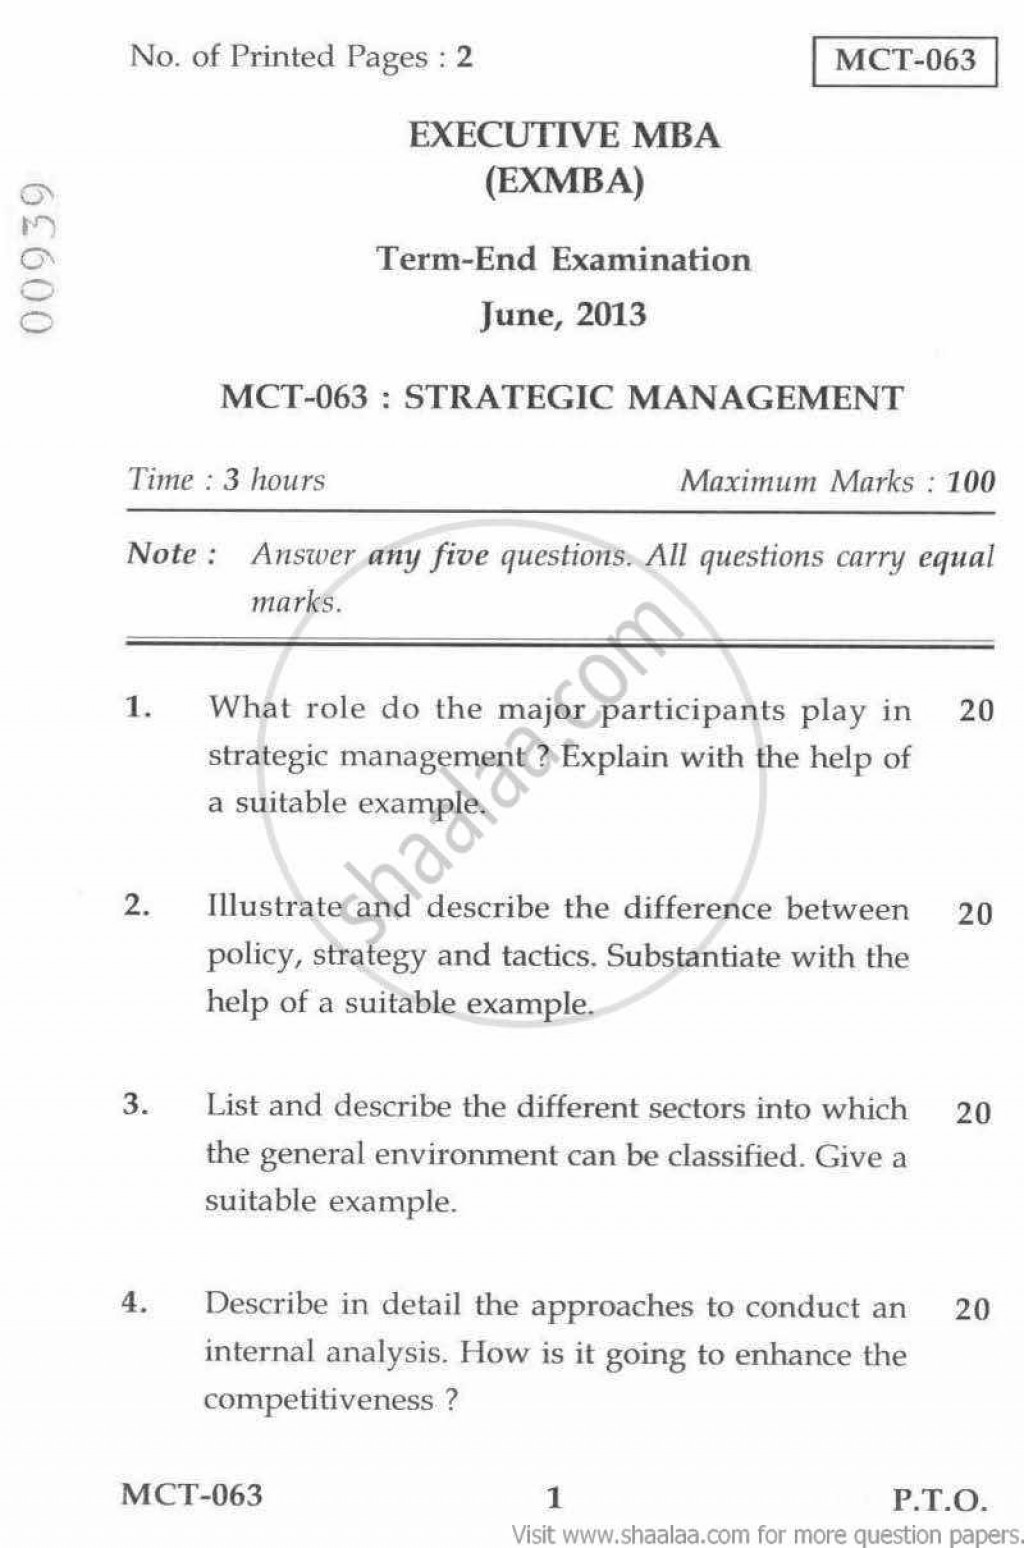 005 Essay Example Role Model Writing For Speech Spm Strategic Management Hamburger Of In Malayalam Pdf Continuous Ielts O Awesome My Father A English Is Parents Hindi Conclusion Paragraph Large